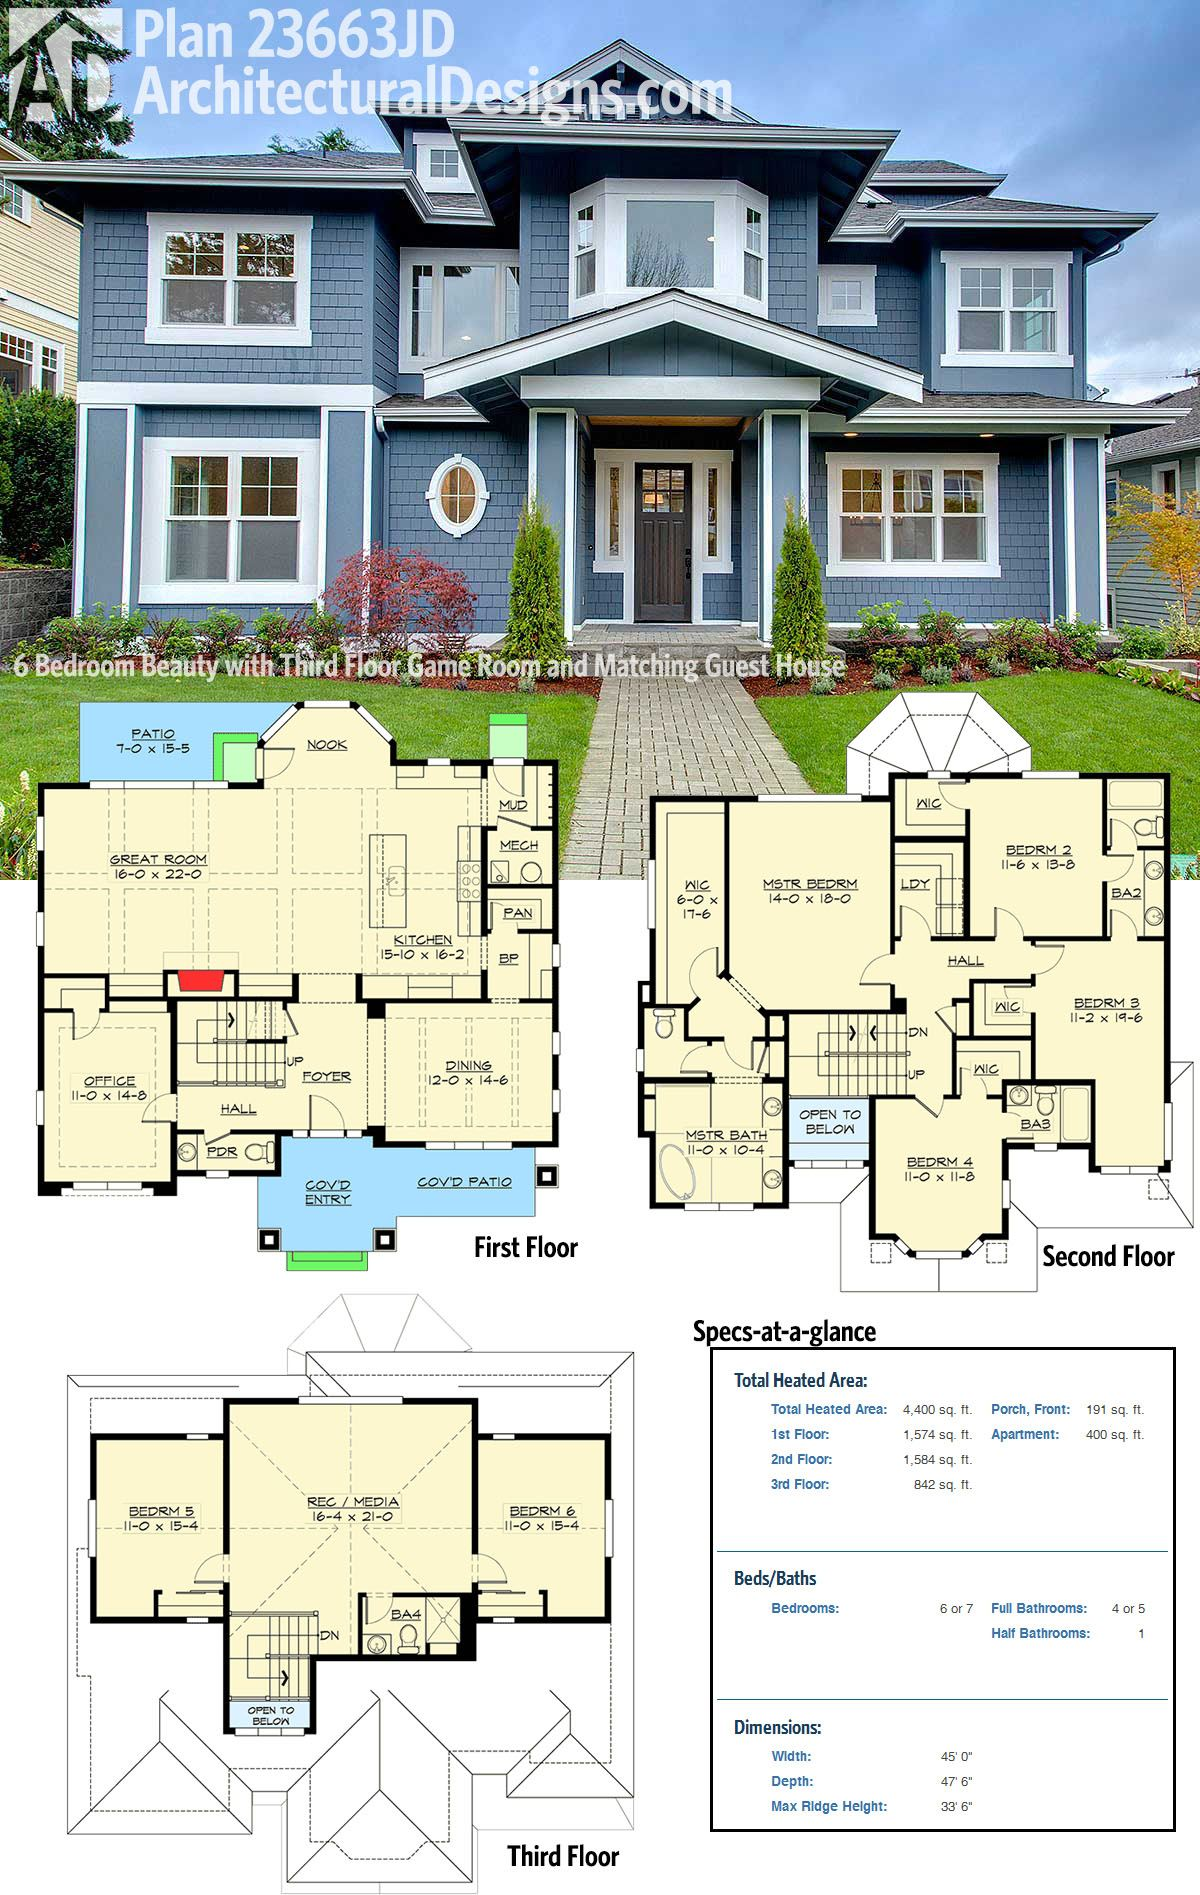 Architectural designs house plan jd not only gives you  story craftsman style also bedroom beauty with third floor game room and rh ar pinterest